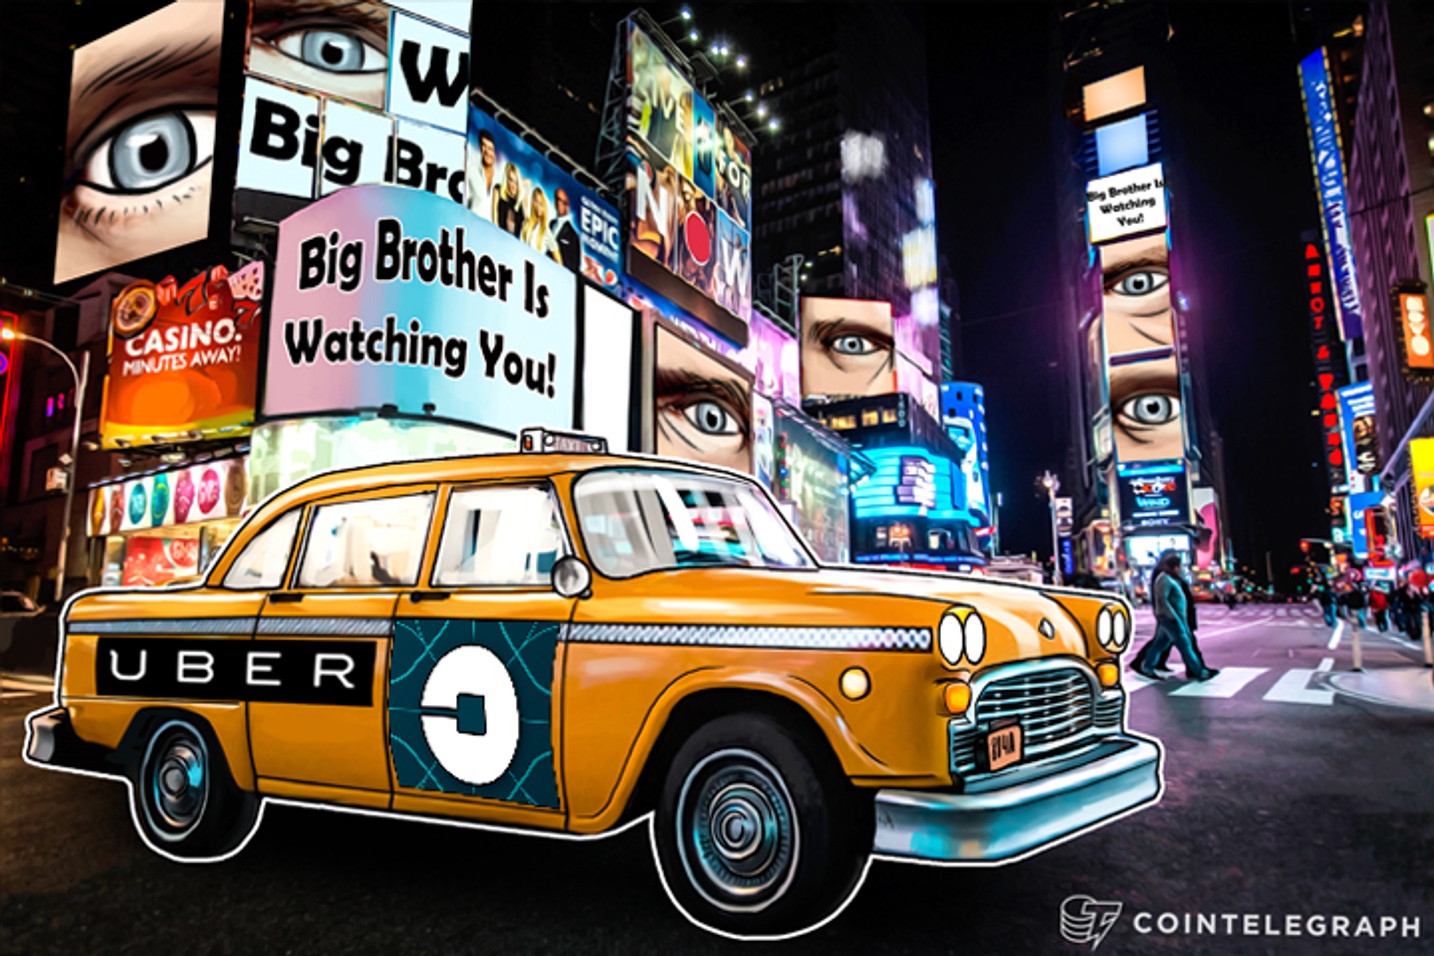 Uber Collects User Location Data, New York City Demands Access